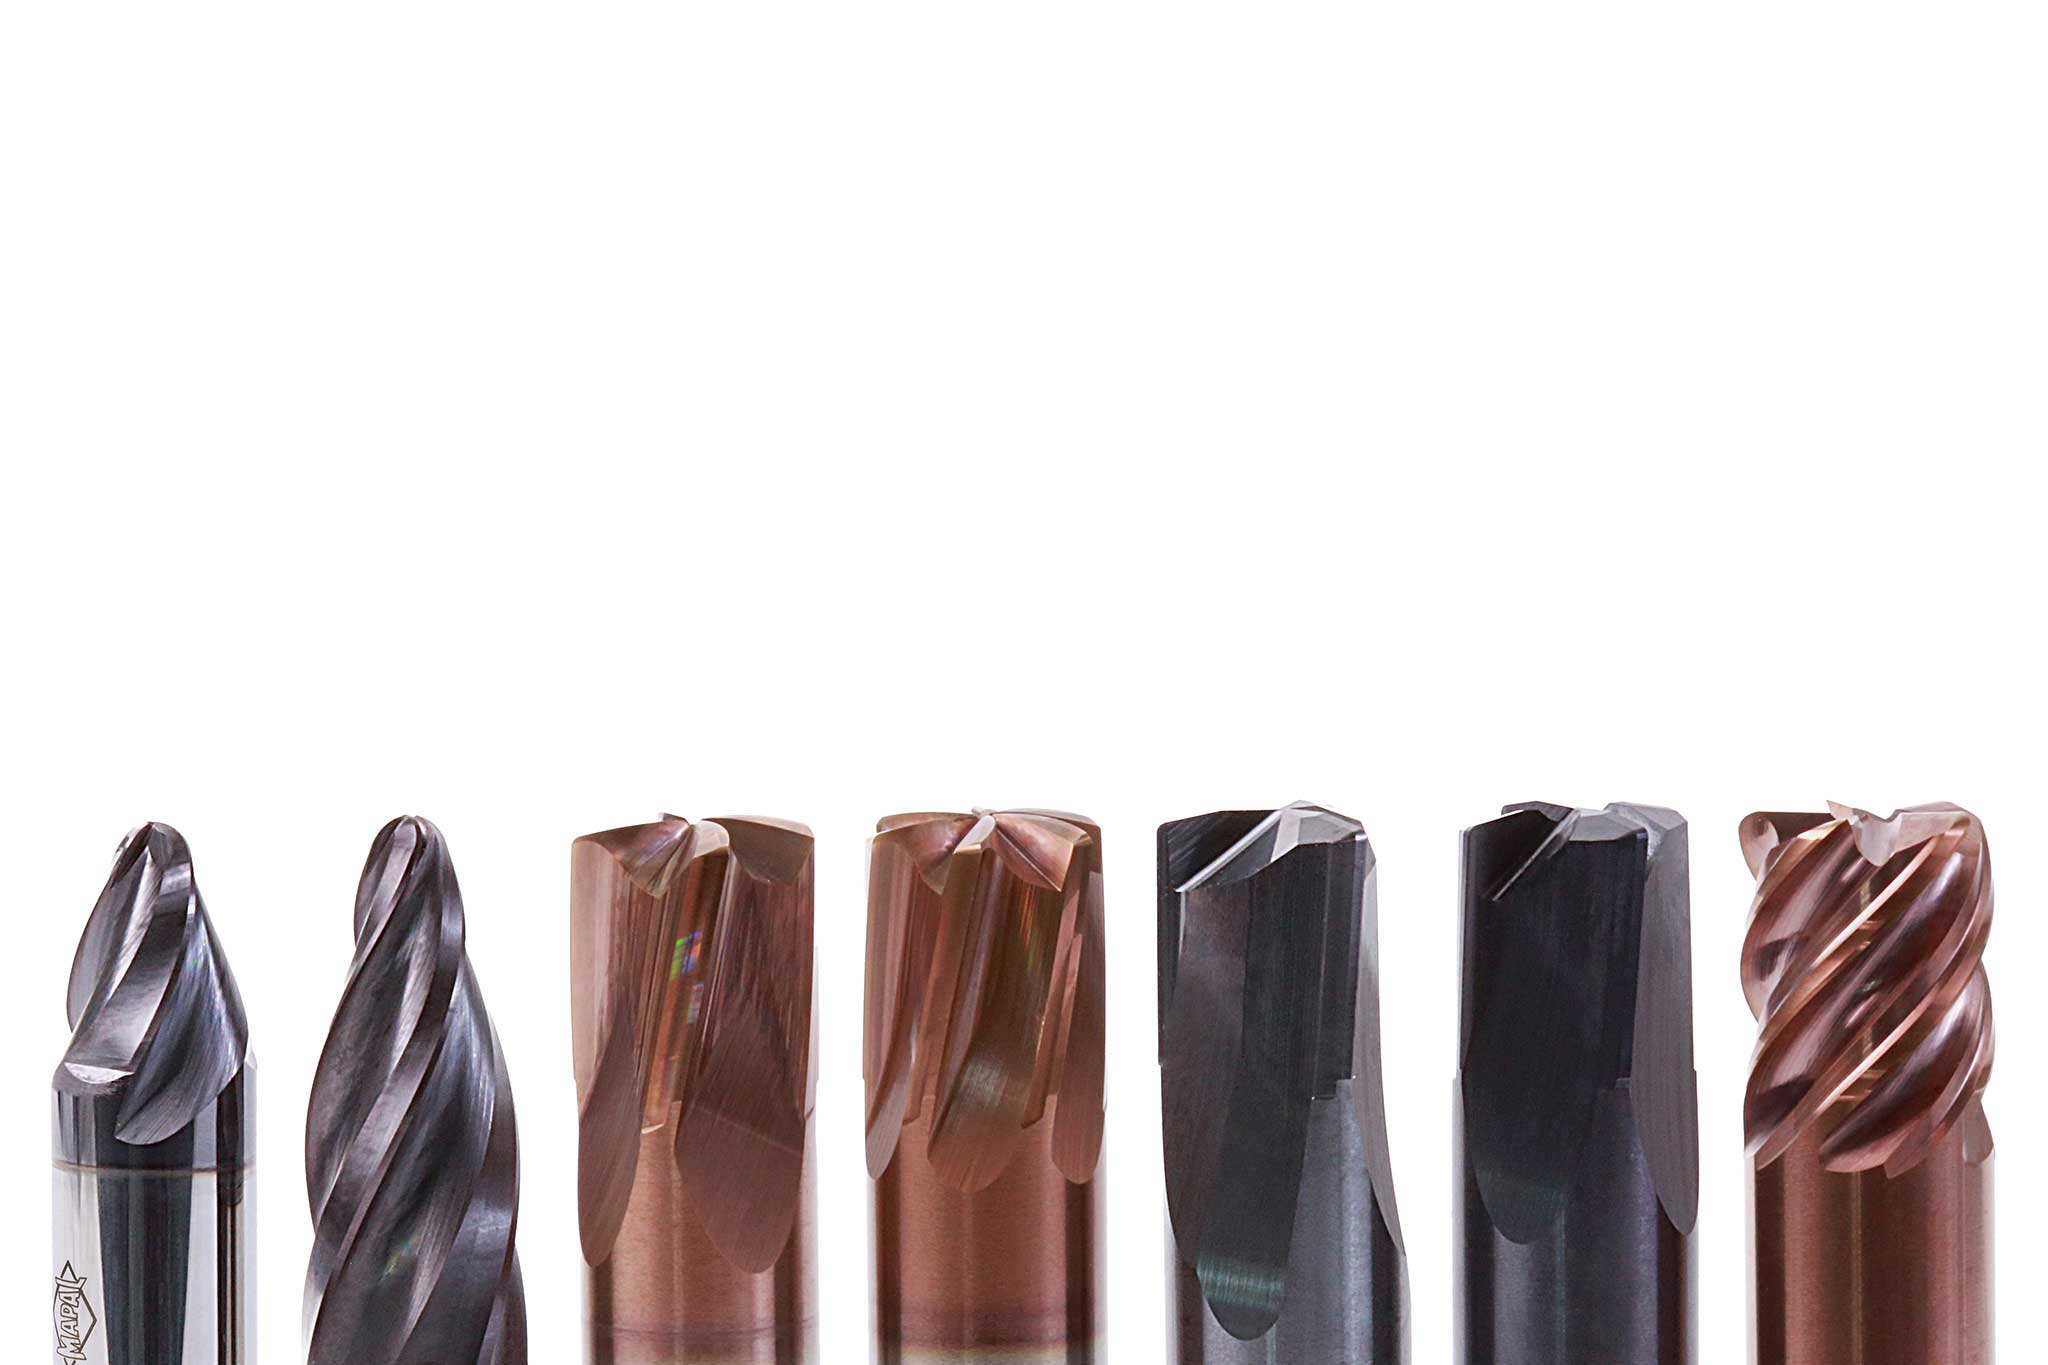 There are seven solid carbide milling cutters placed in a row. They have different shapes and coatings.